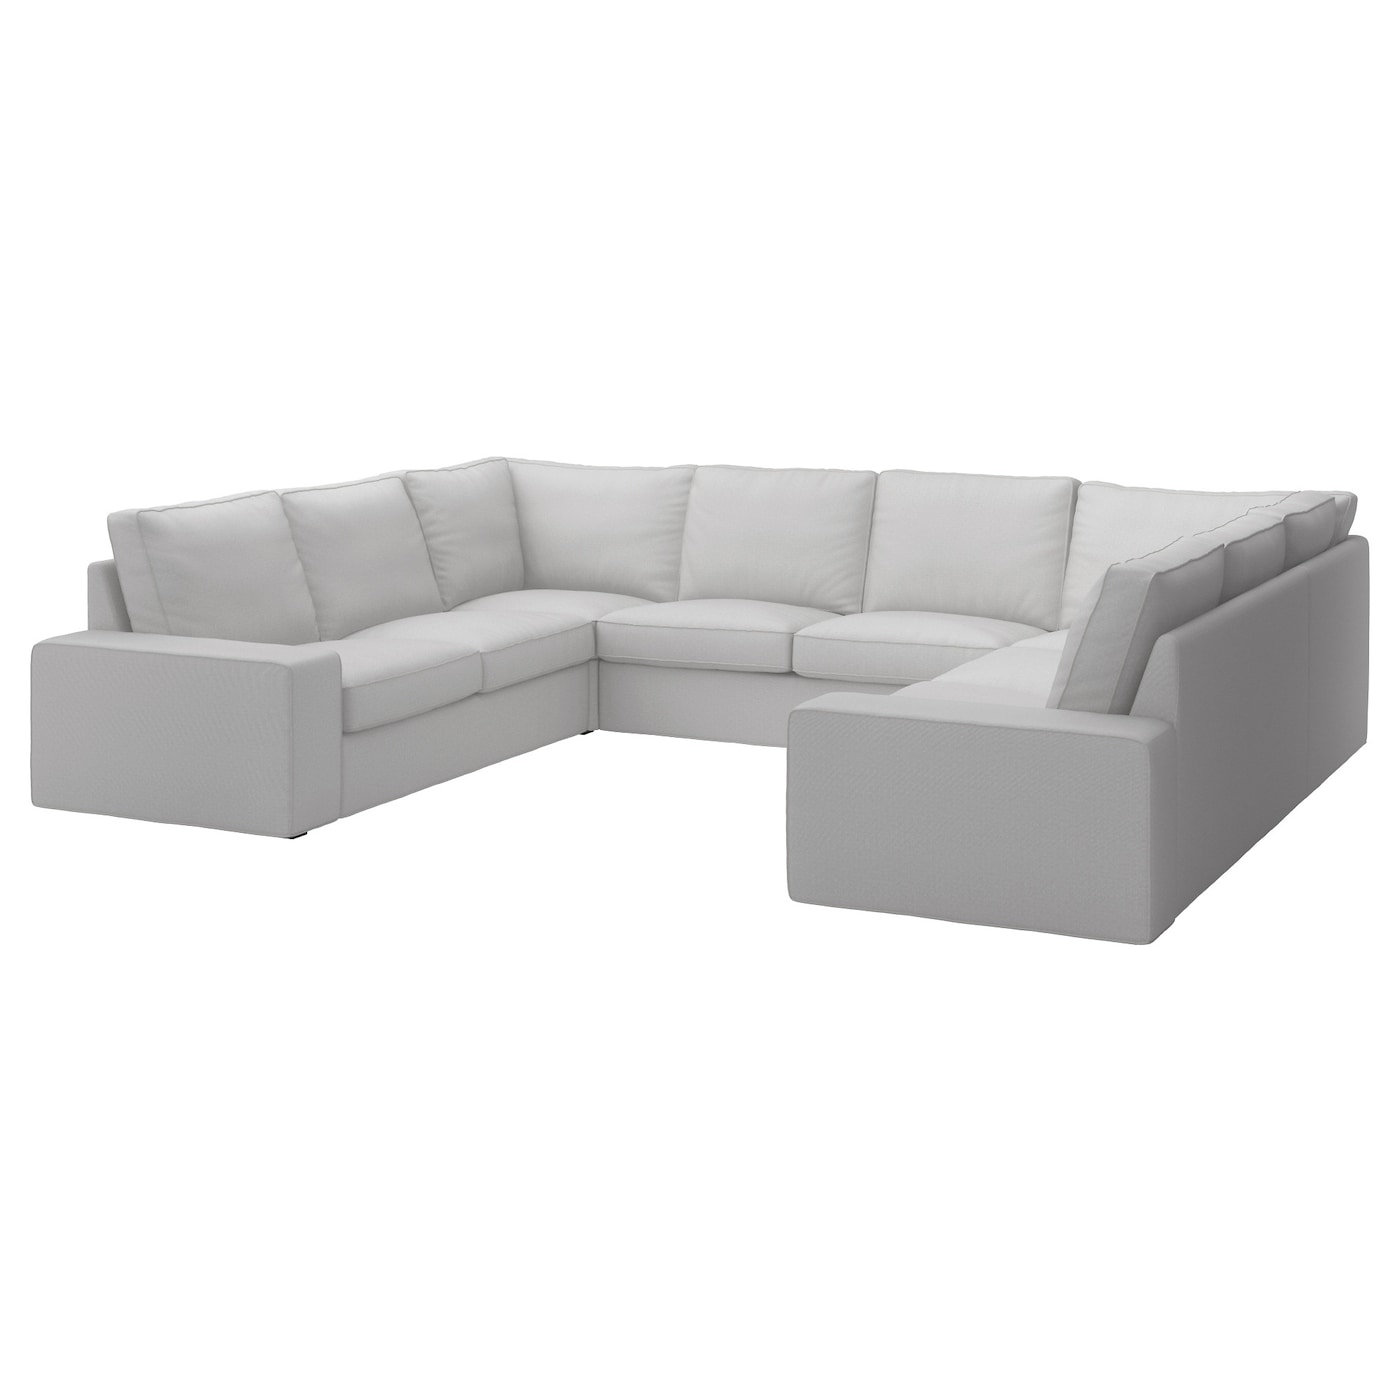 Kivik U Shaped Sofa 6 Seat Ramna Light Grey Ikea